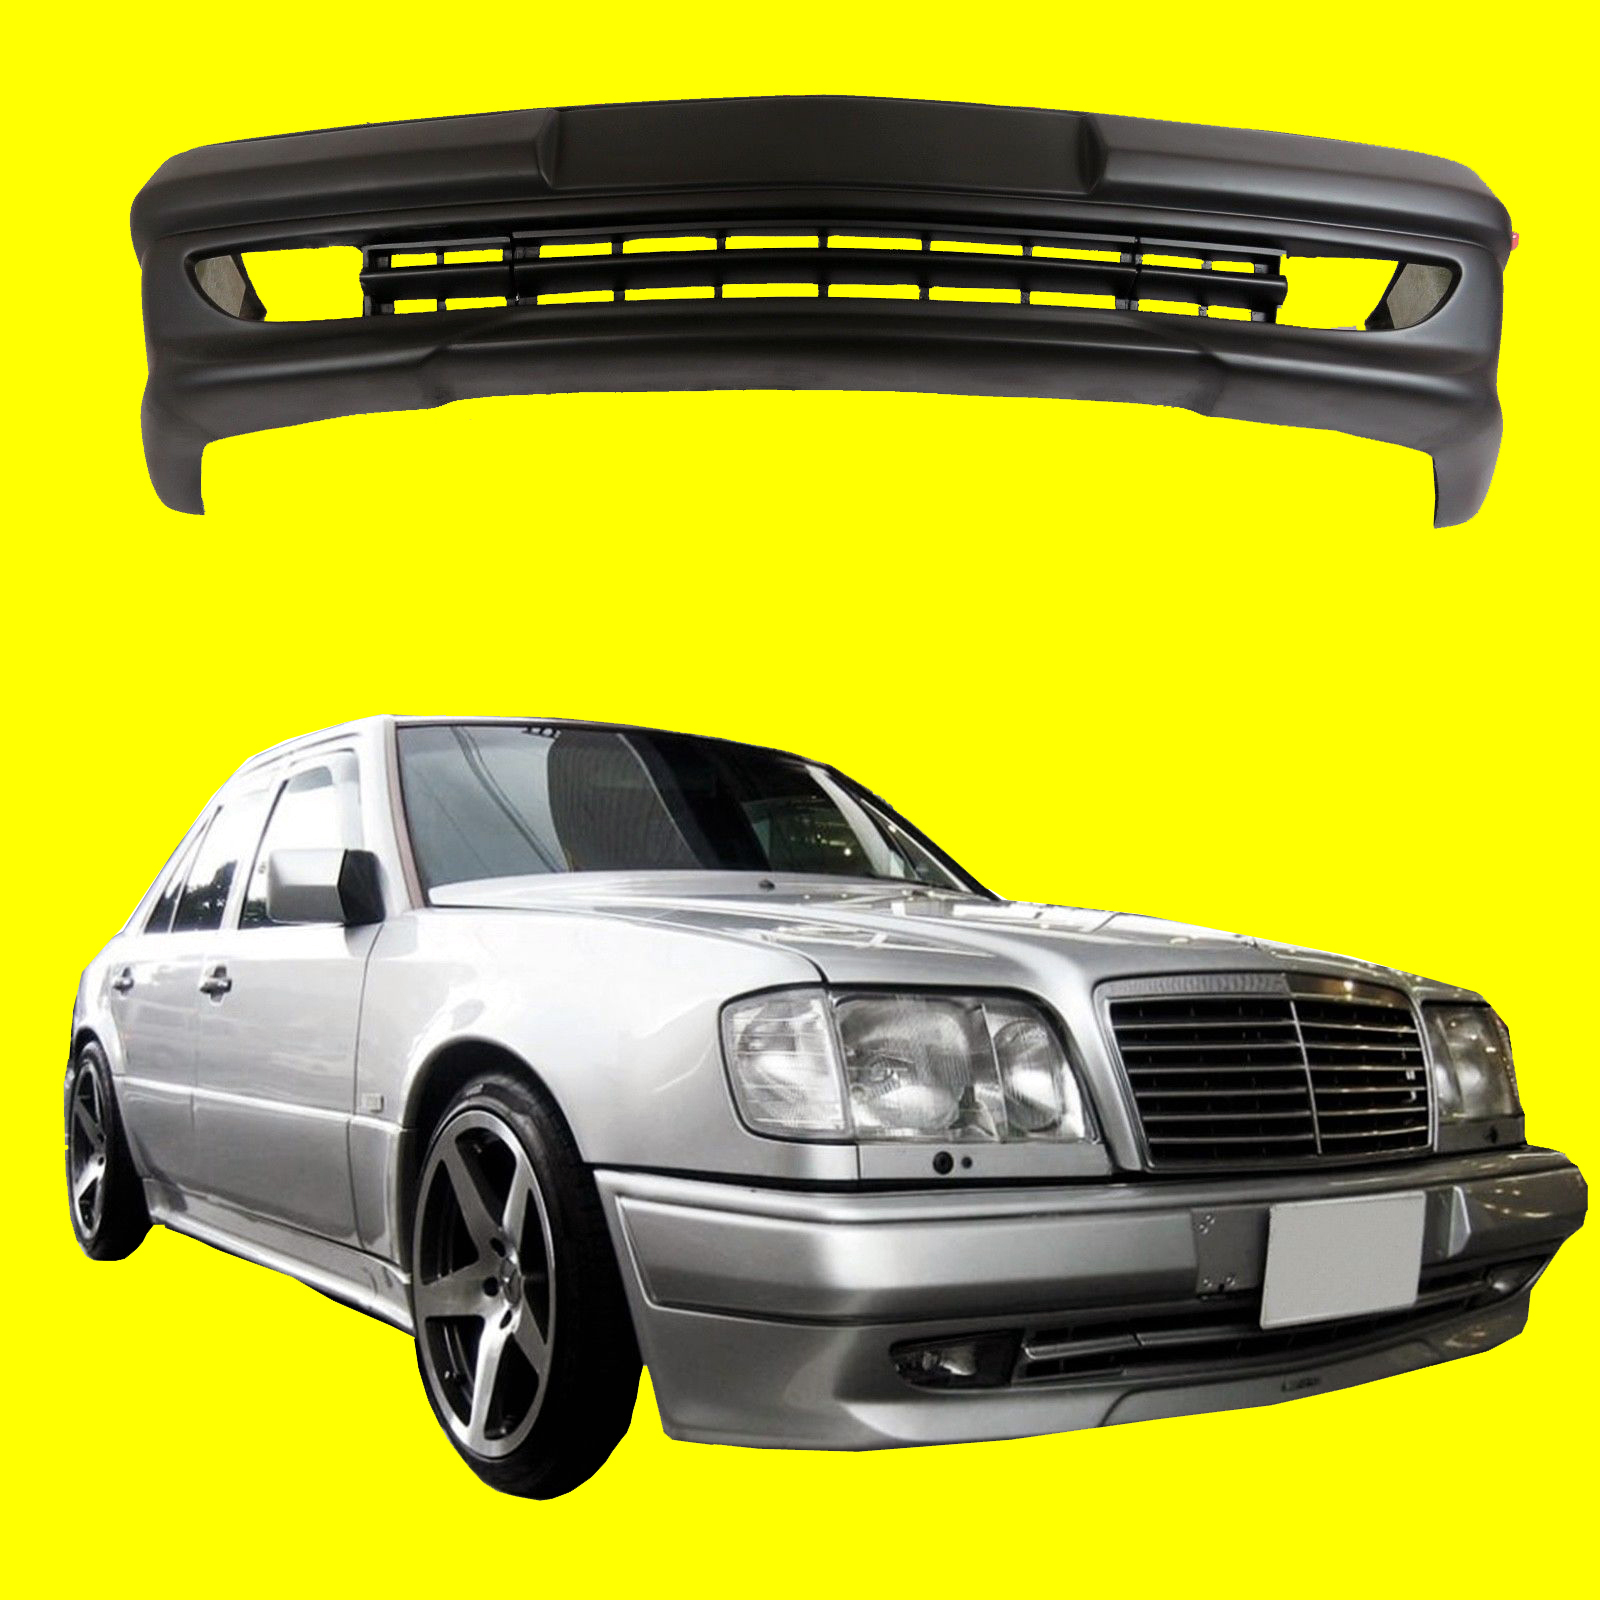 Mercedes benz class w124 amg 3 style front bumper spoiler for Mercedes benz front bumper parts